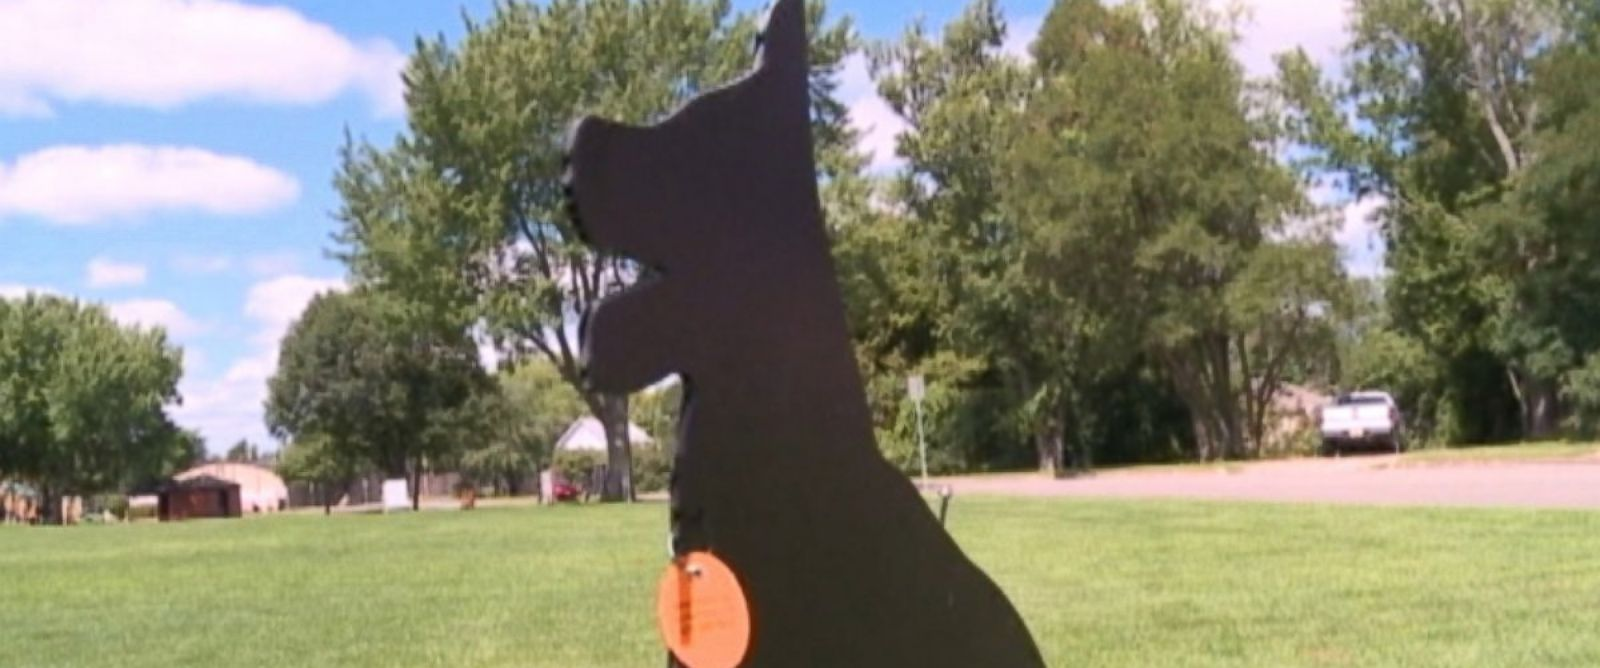 PHOTO: City leaders in Stevens Point, Wis., are using cardboard cutouts of dogs to keep flocks of geese away from their parks.